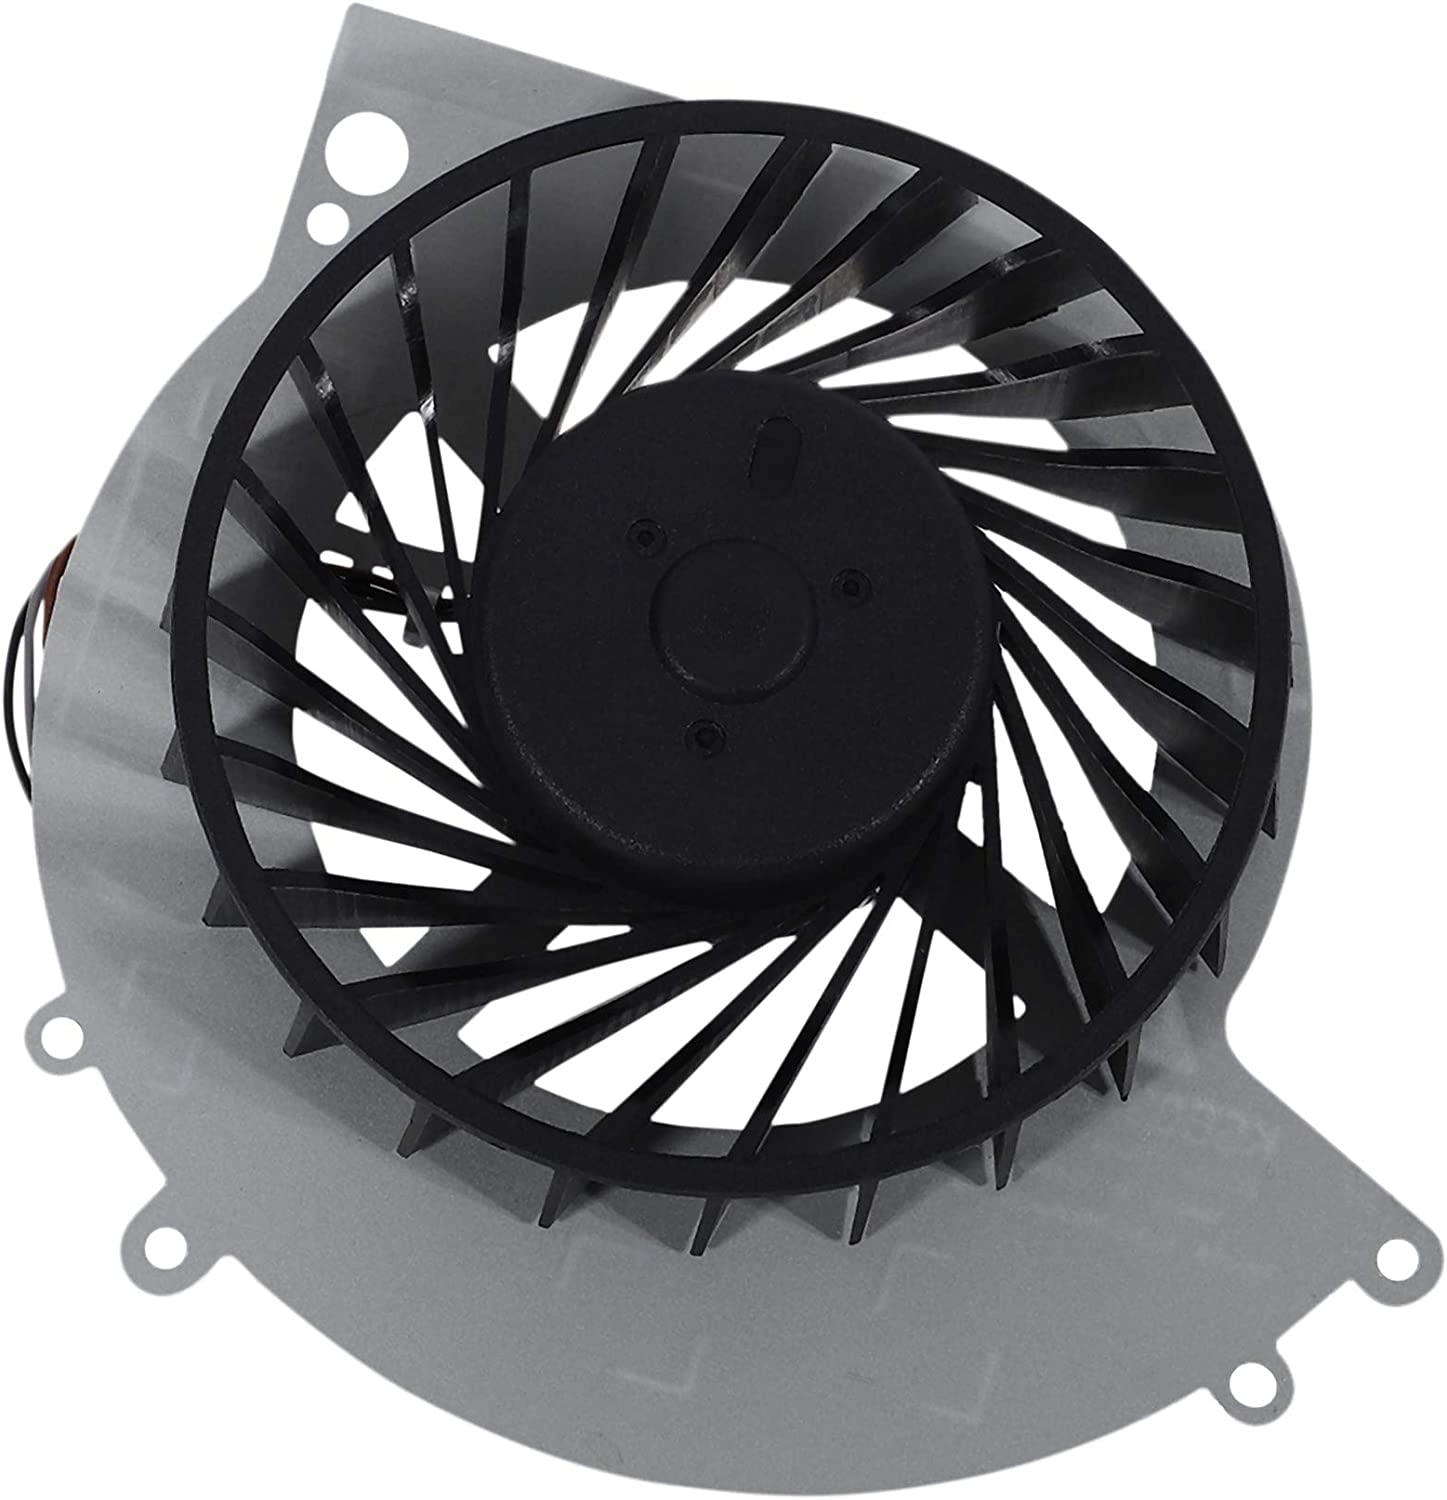 SNOWINSPRING Ksb0912He Internal 1 year warranty Cooling Cooler Fan Spring new work one after another Cuh-1 Ps4 for